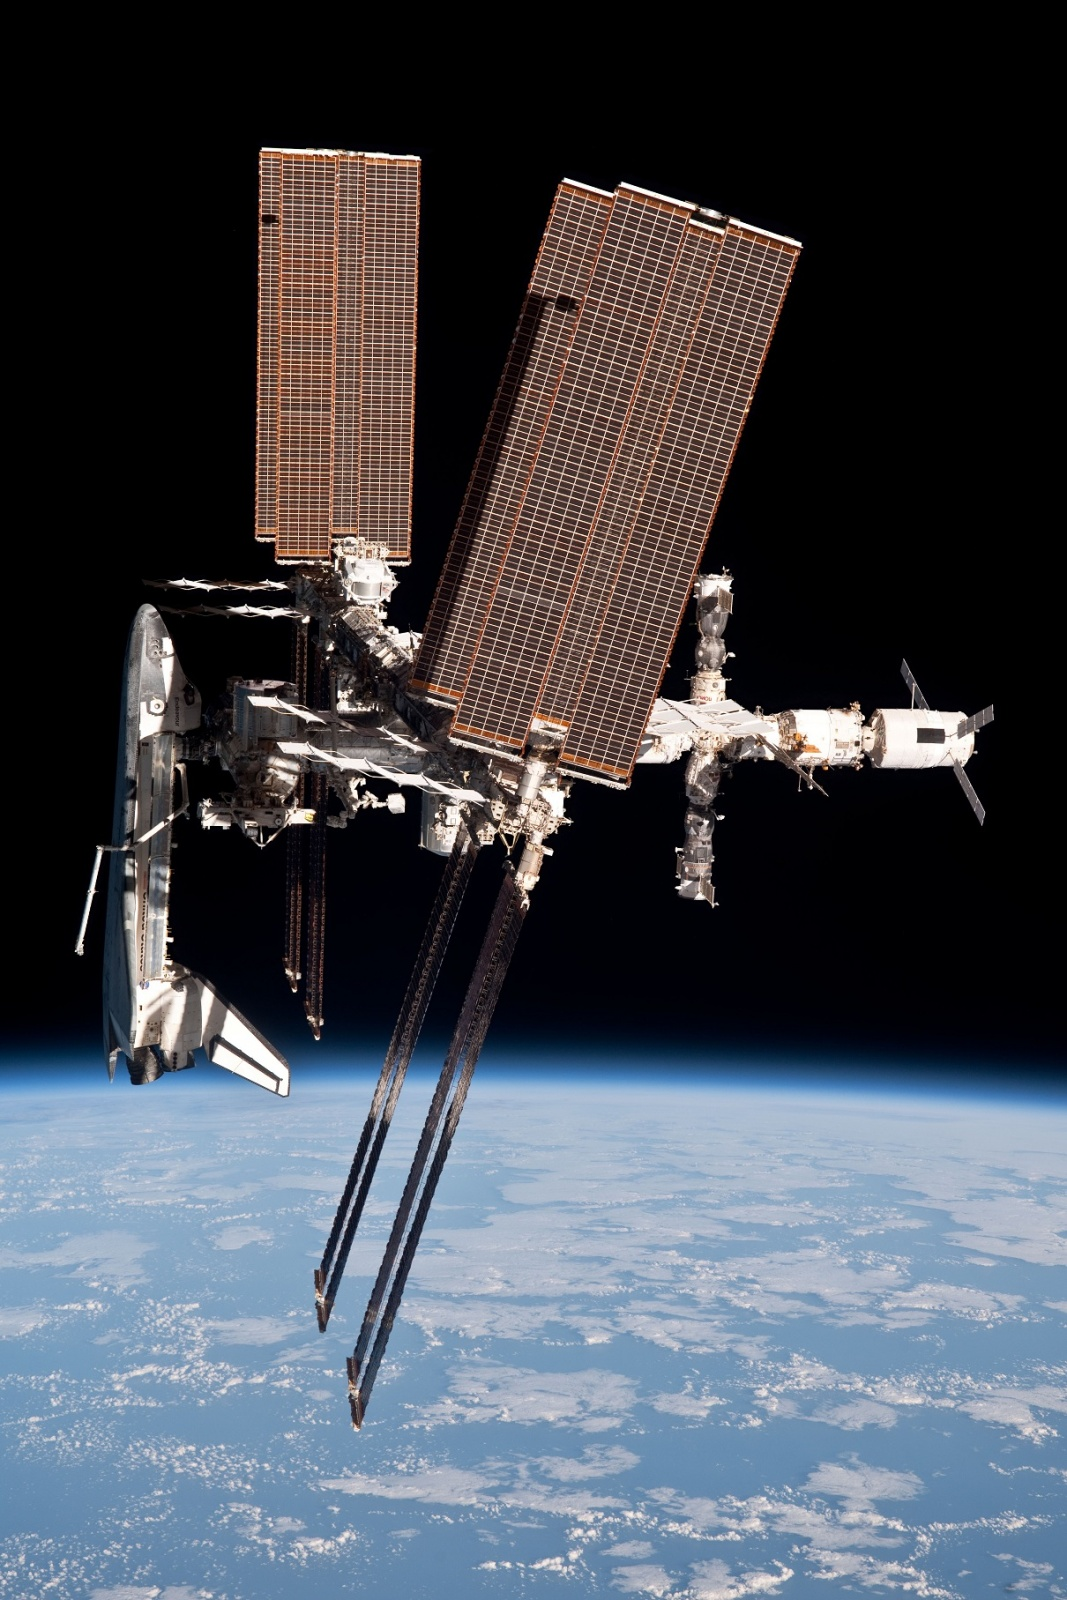 Endeavour_docked_to_ISS.jpg